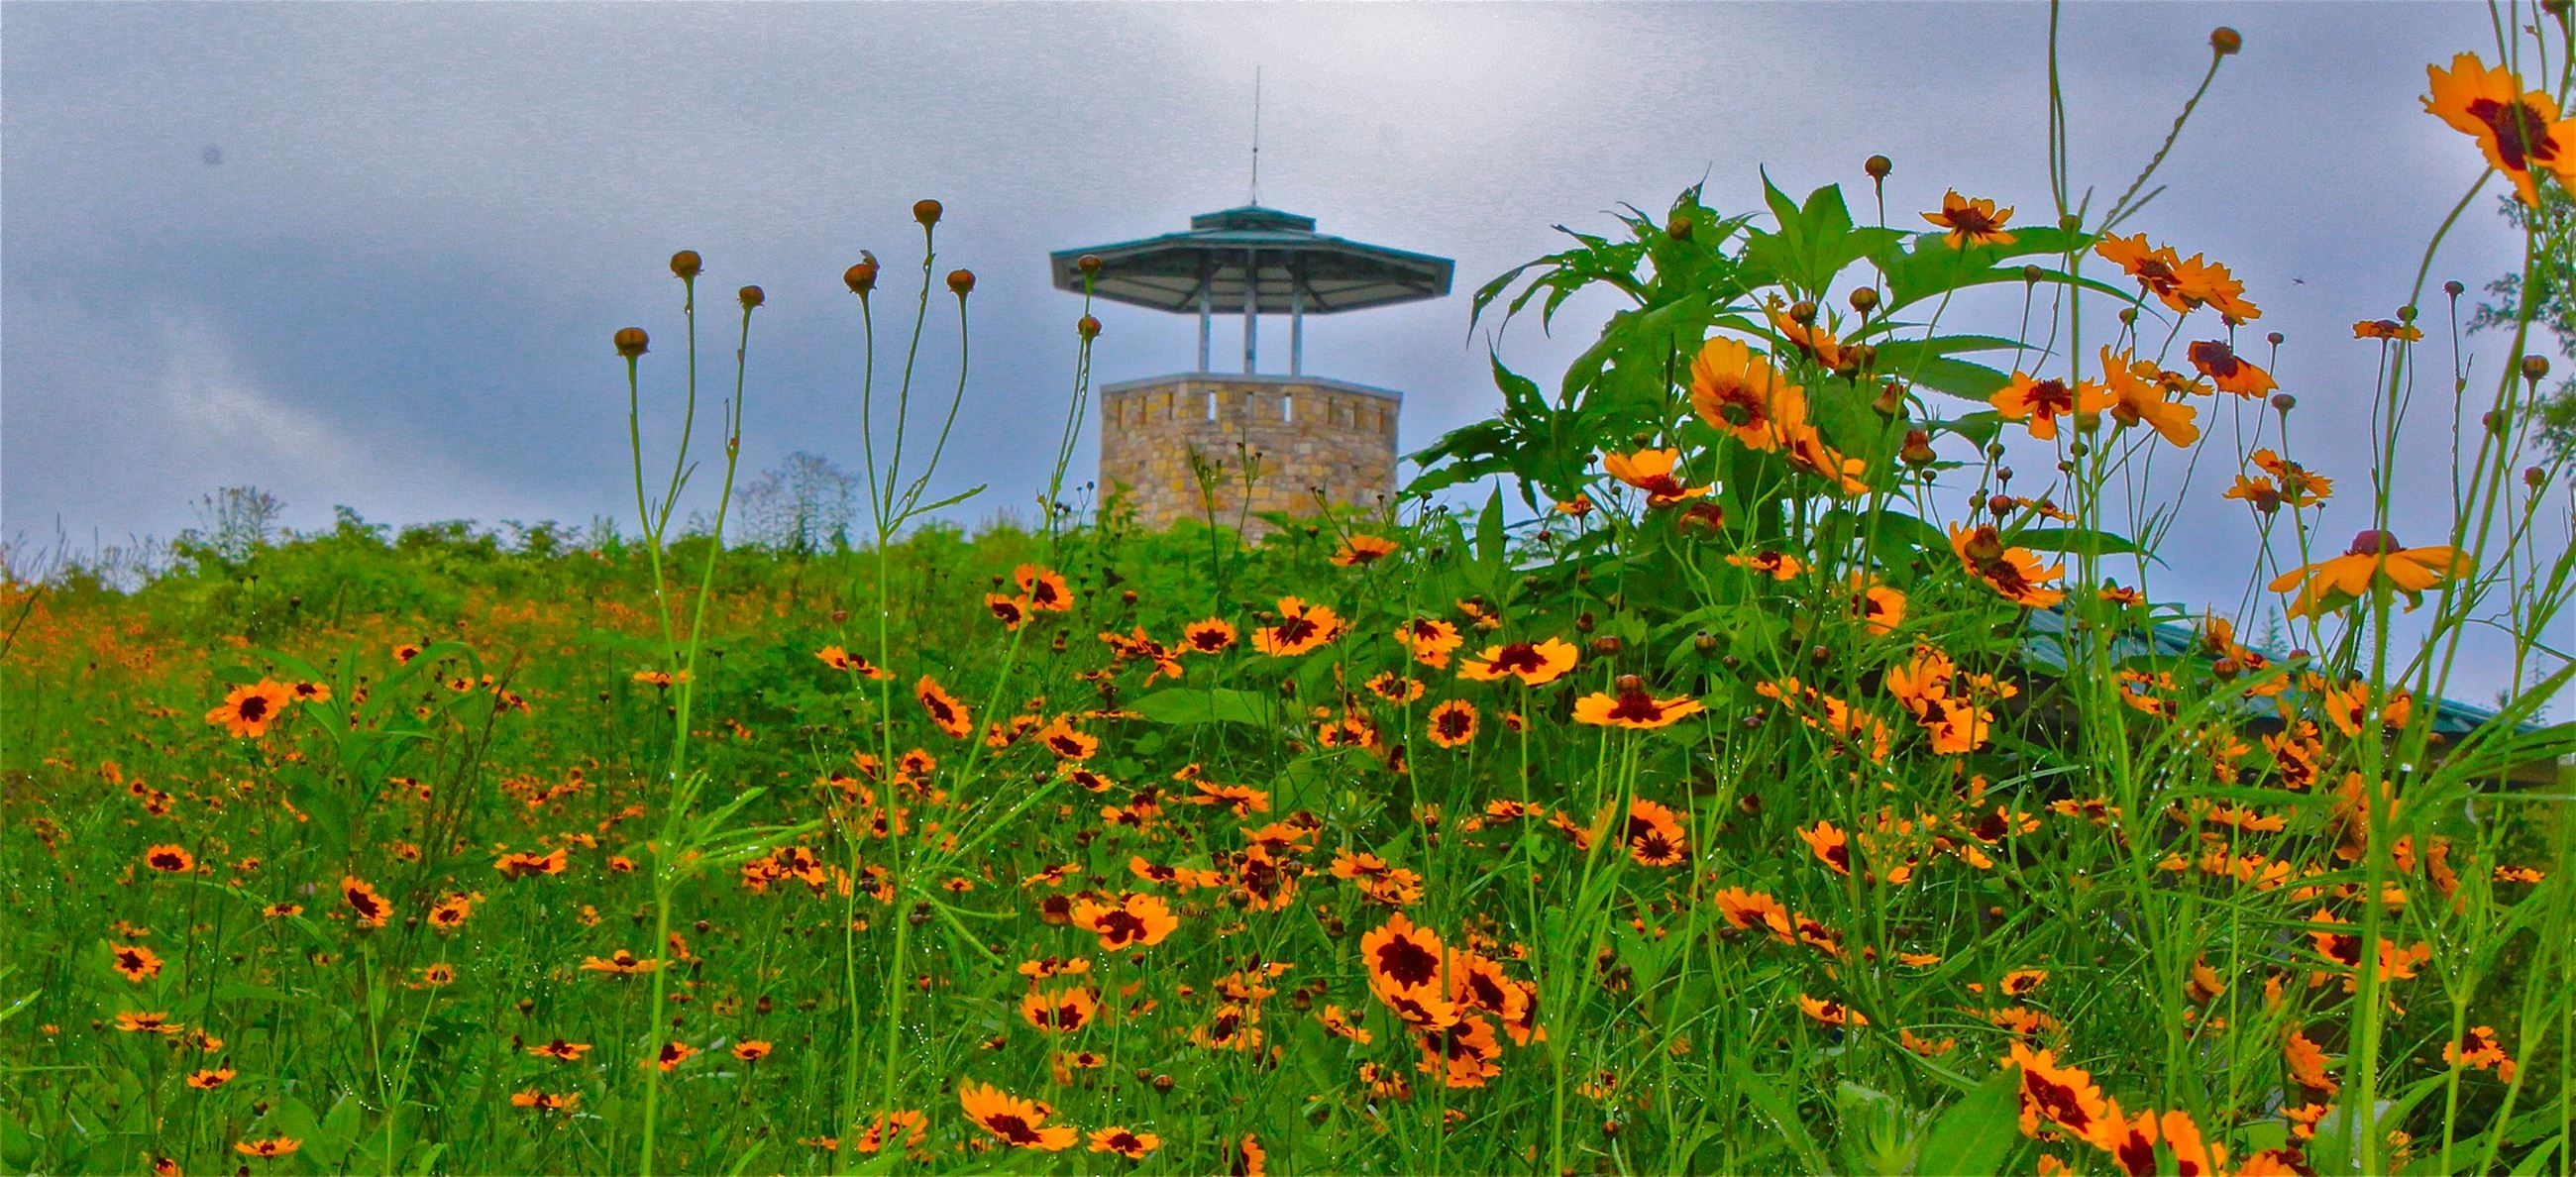 Photo of High Knob Observation Tower